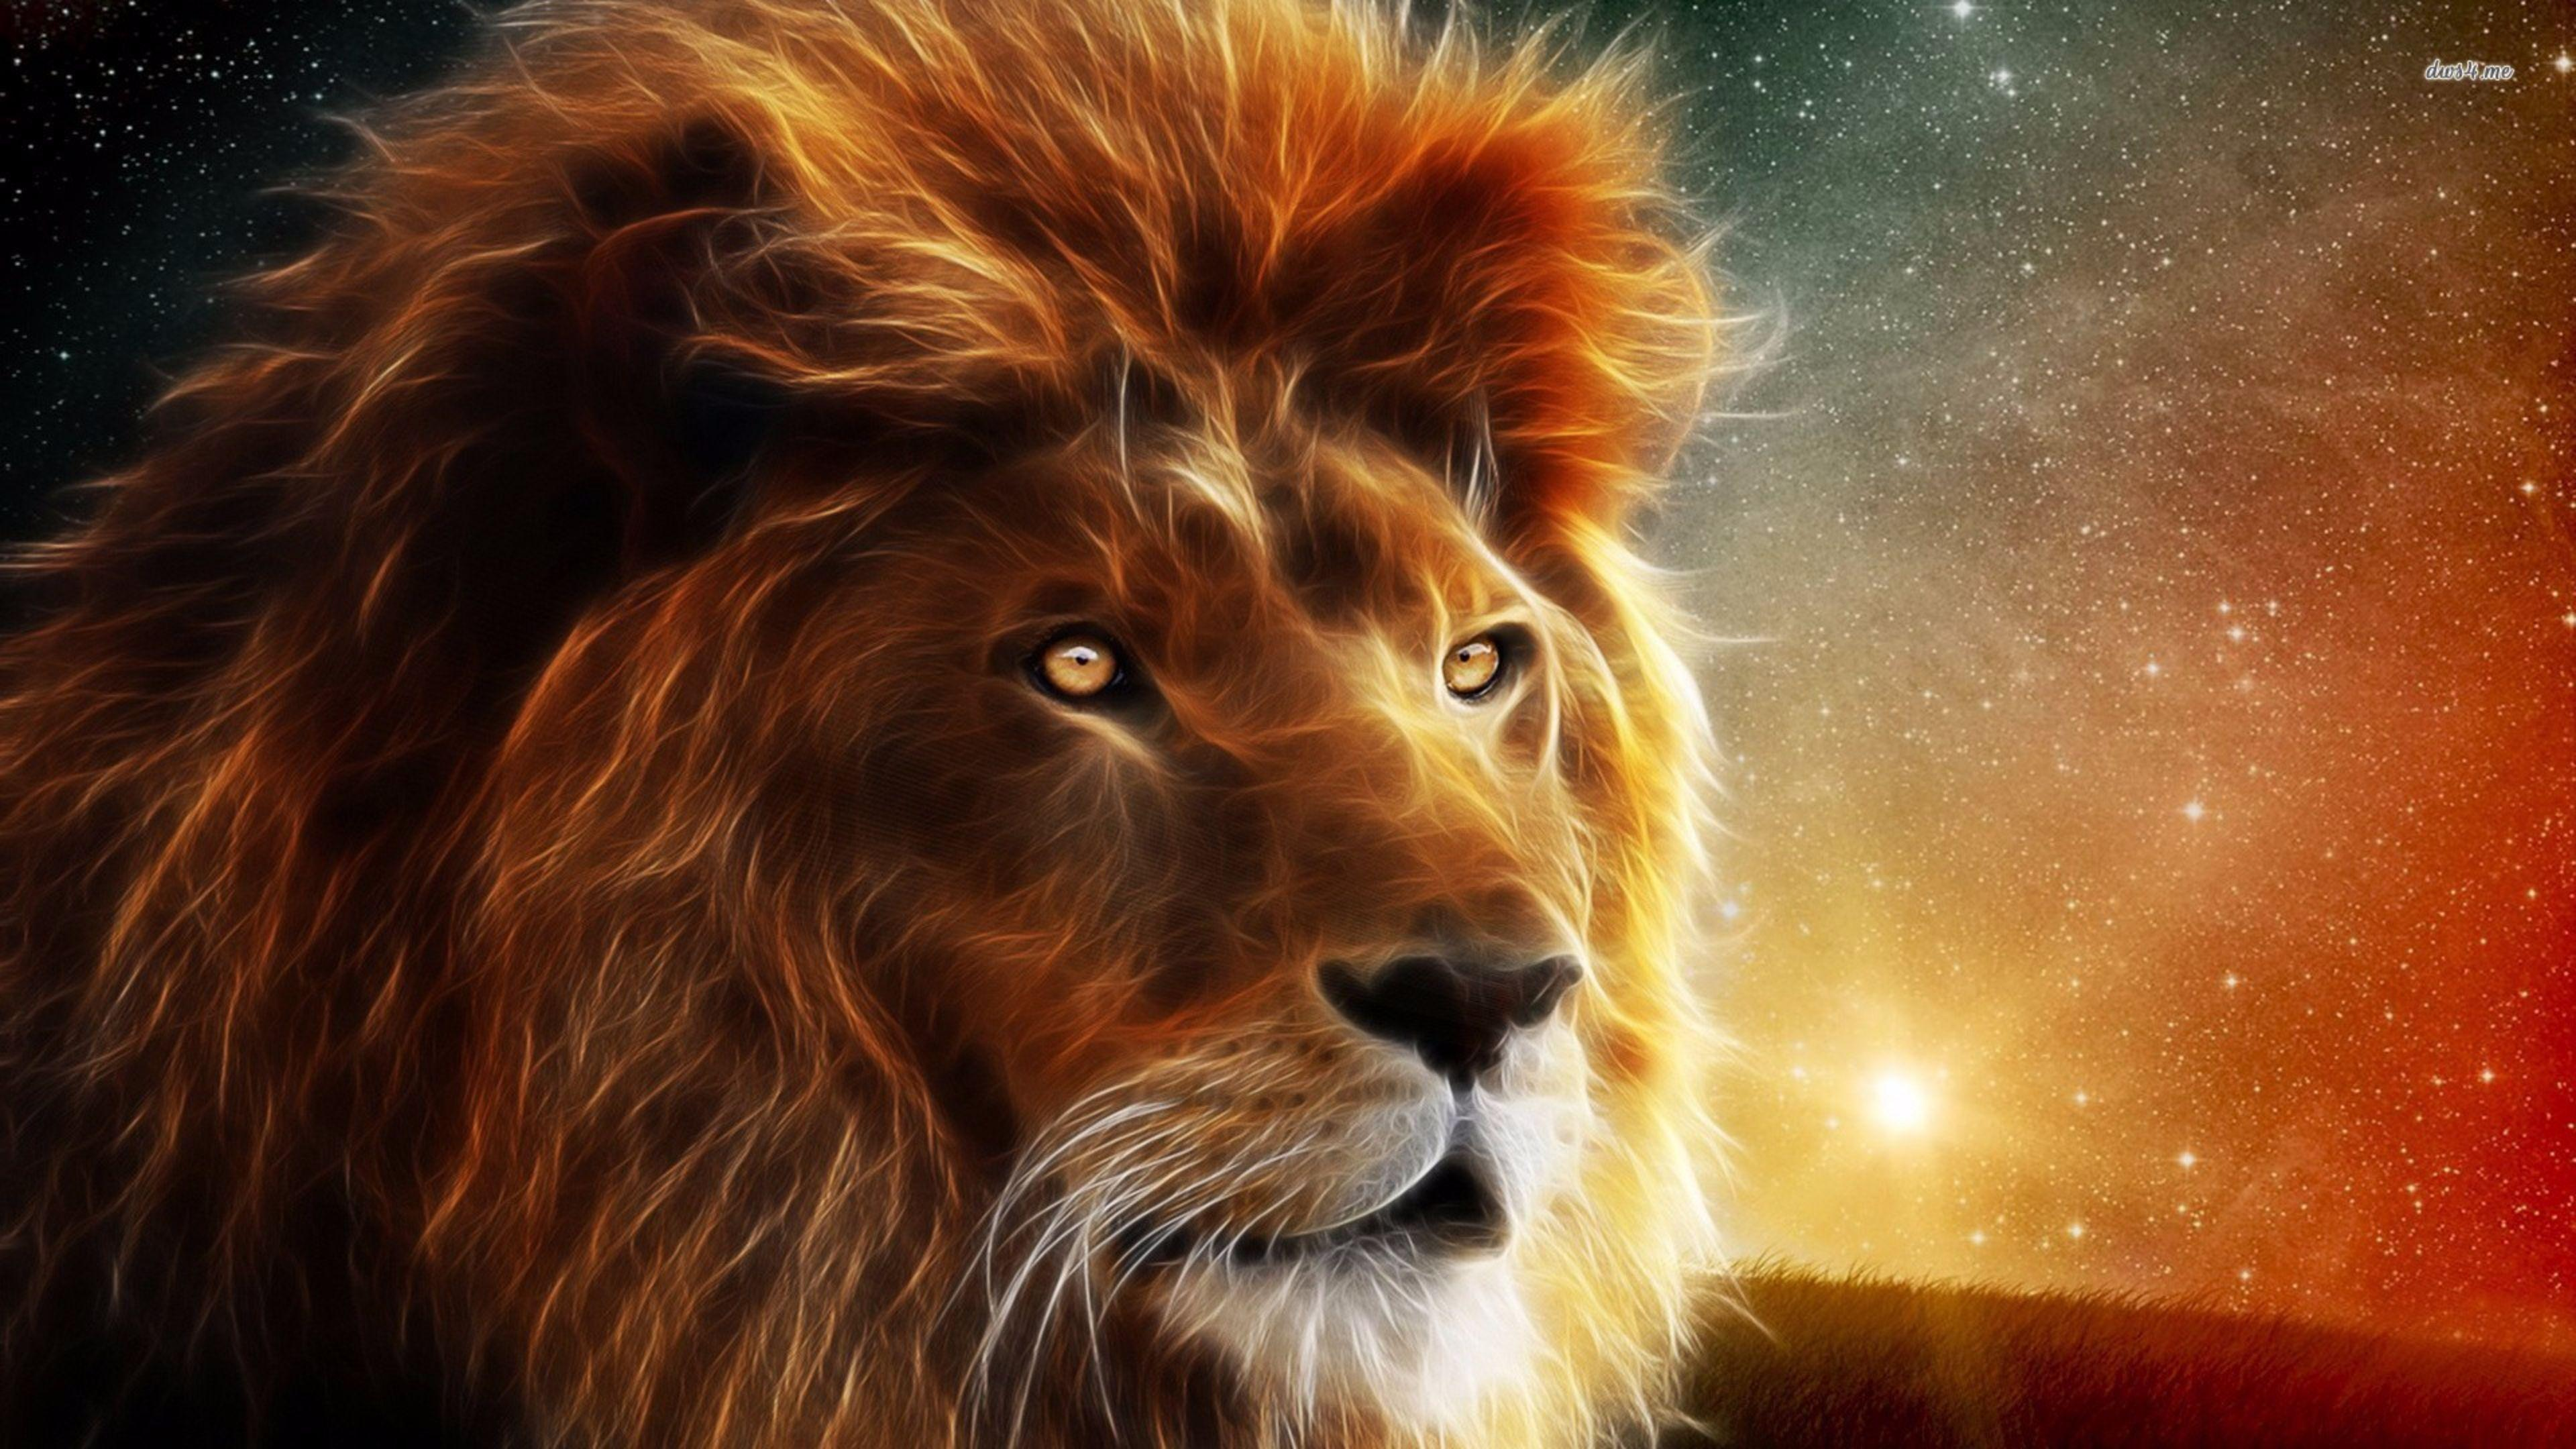 Lion Wallpaper 4k - Lion Animal Wallpaper Hd , HD Wallpaper & Backgrounds